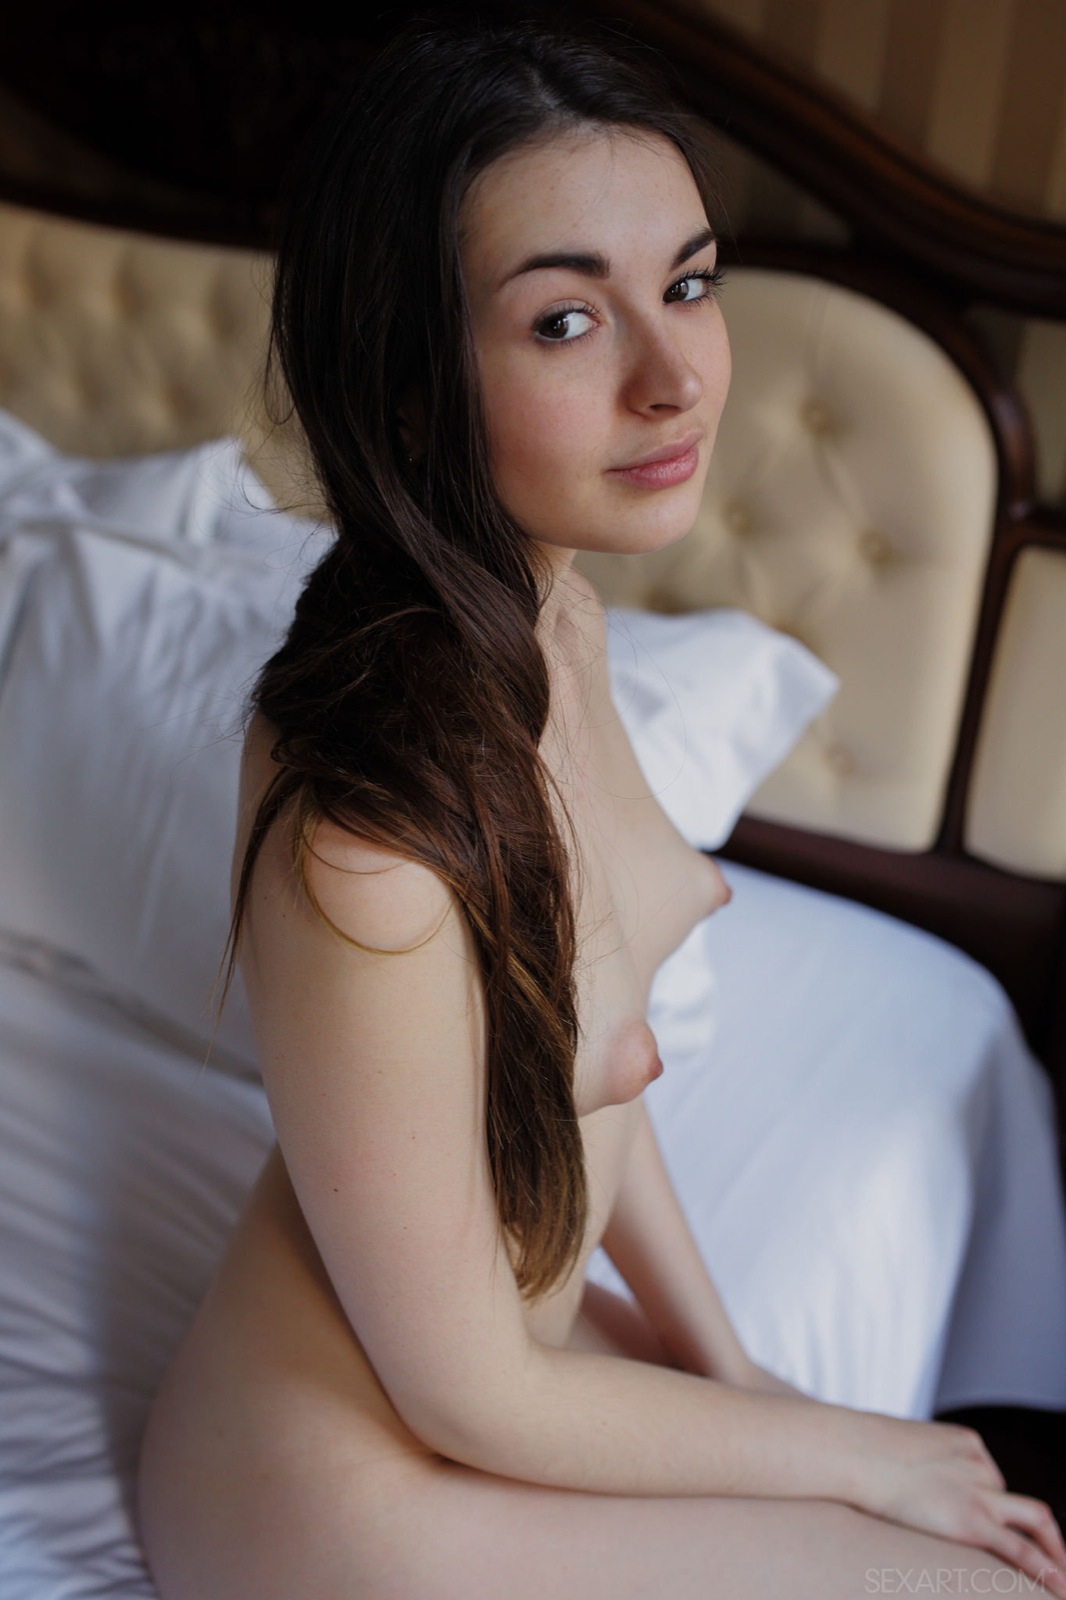 Asian nude girl chick